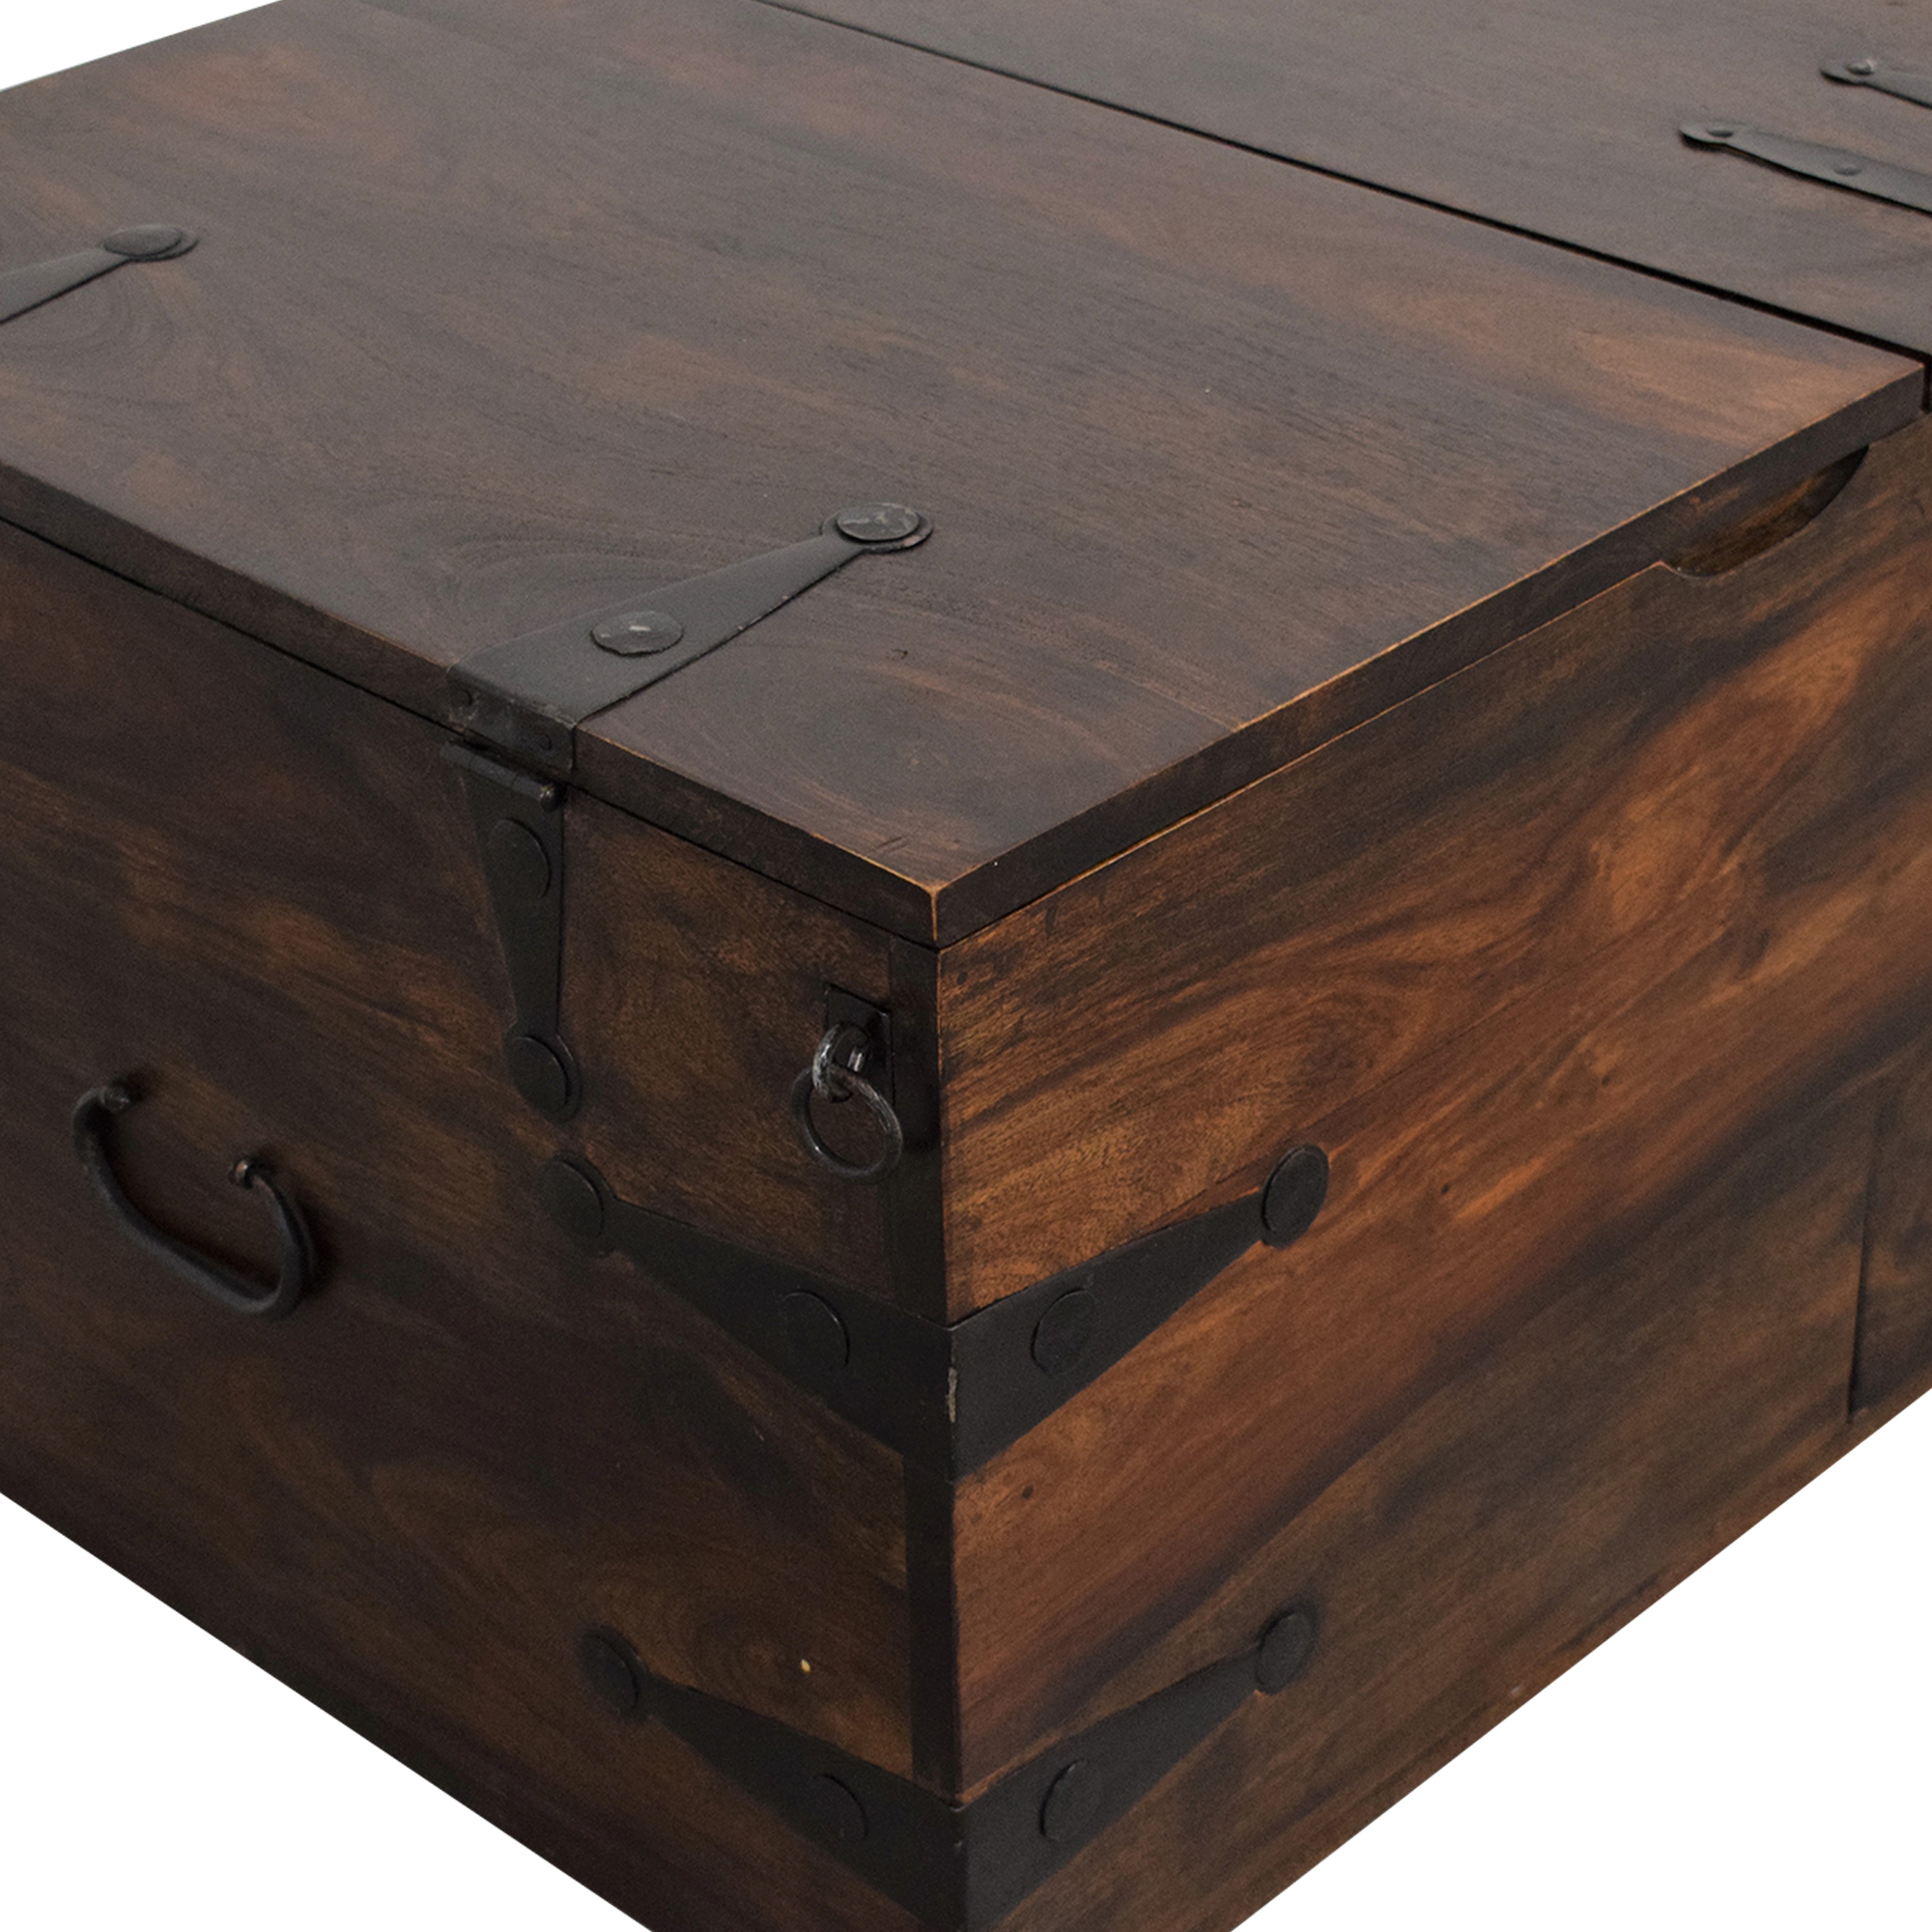 Crate & Barrel Crate & Barrel Taka Trunk and Coffee Table used